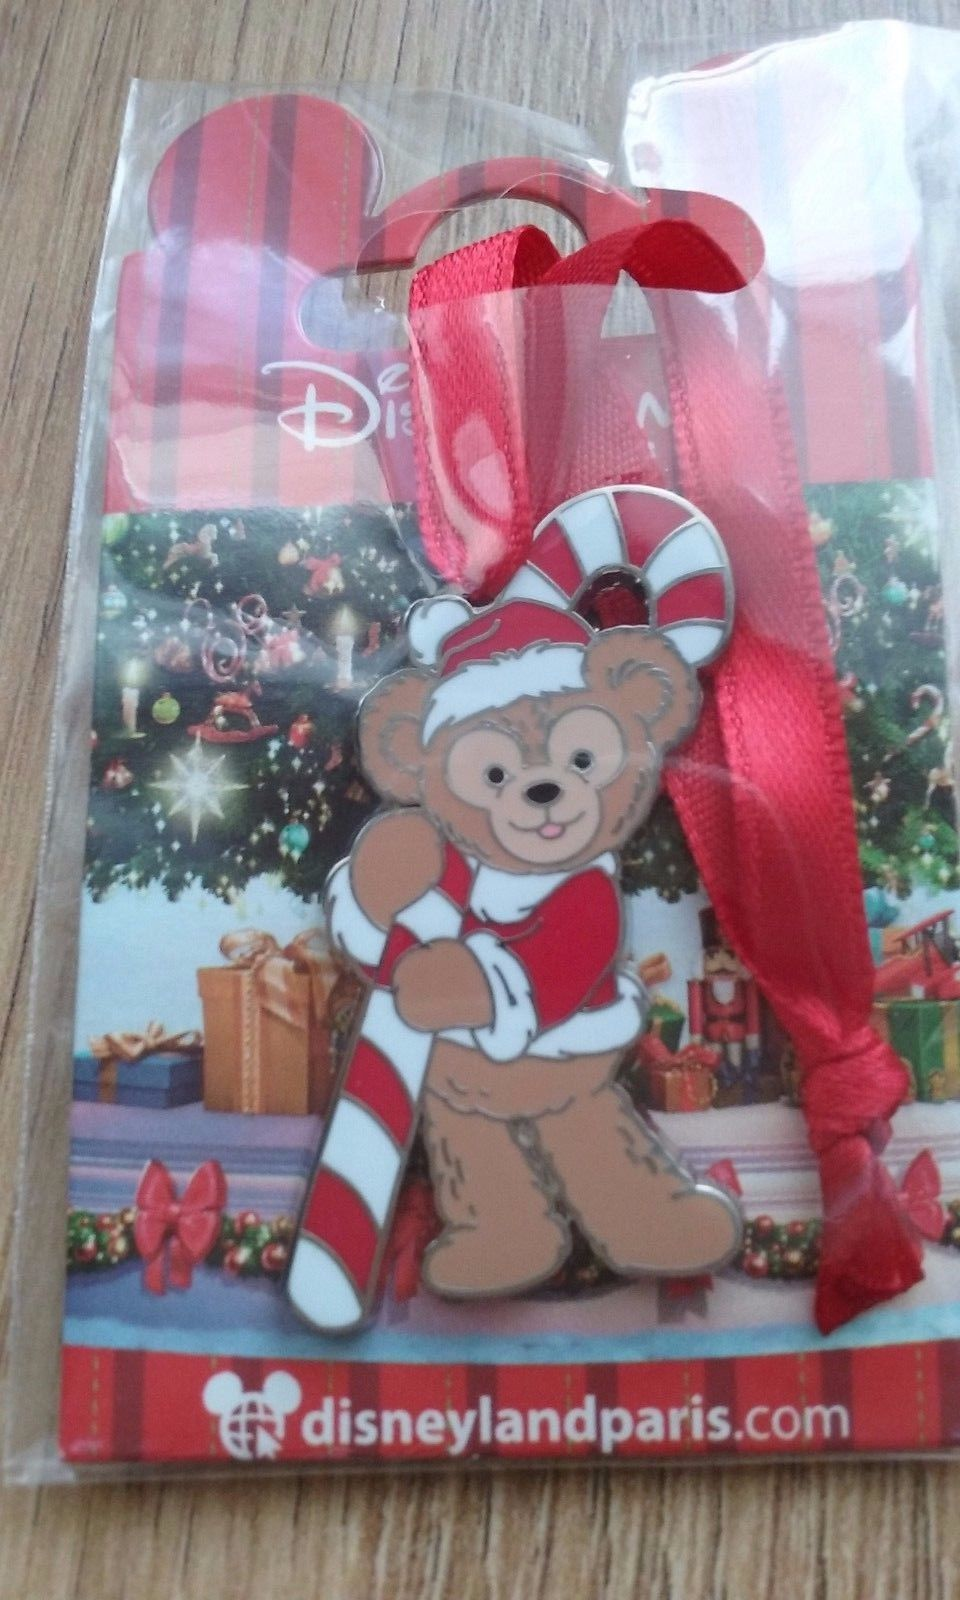 DLP 2015 Holiday Pin.jpg